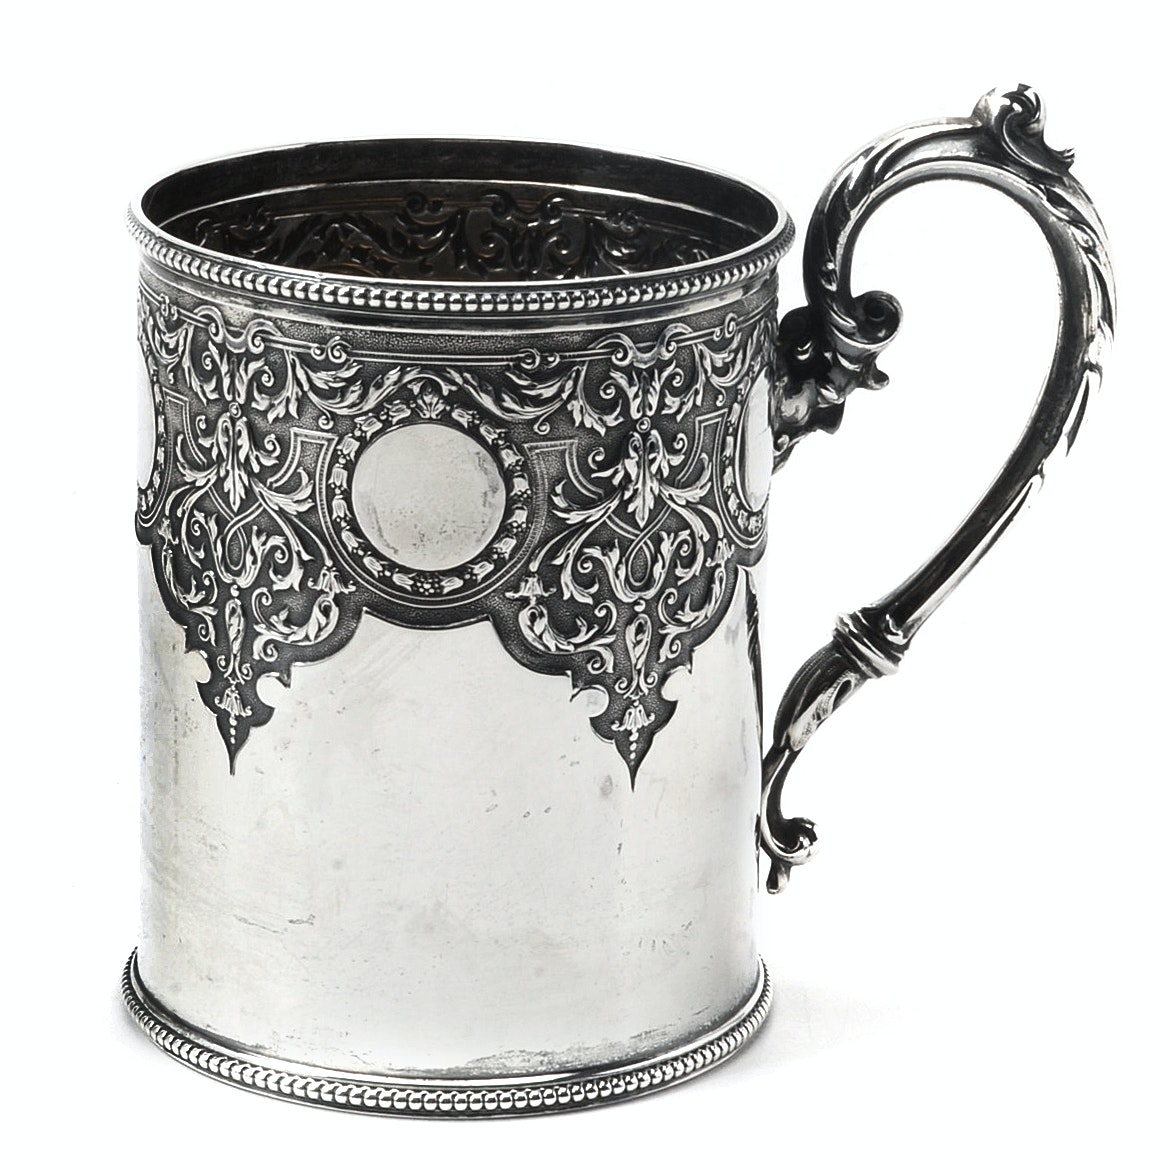 Circa 1866 Martin, Hall & Co. Sterling Silver Christening Mug with Leather Case